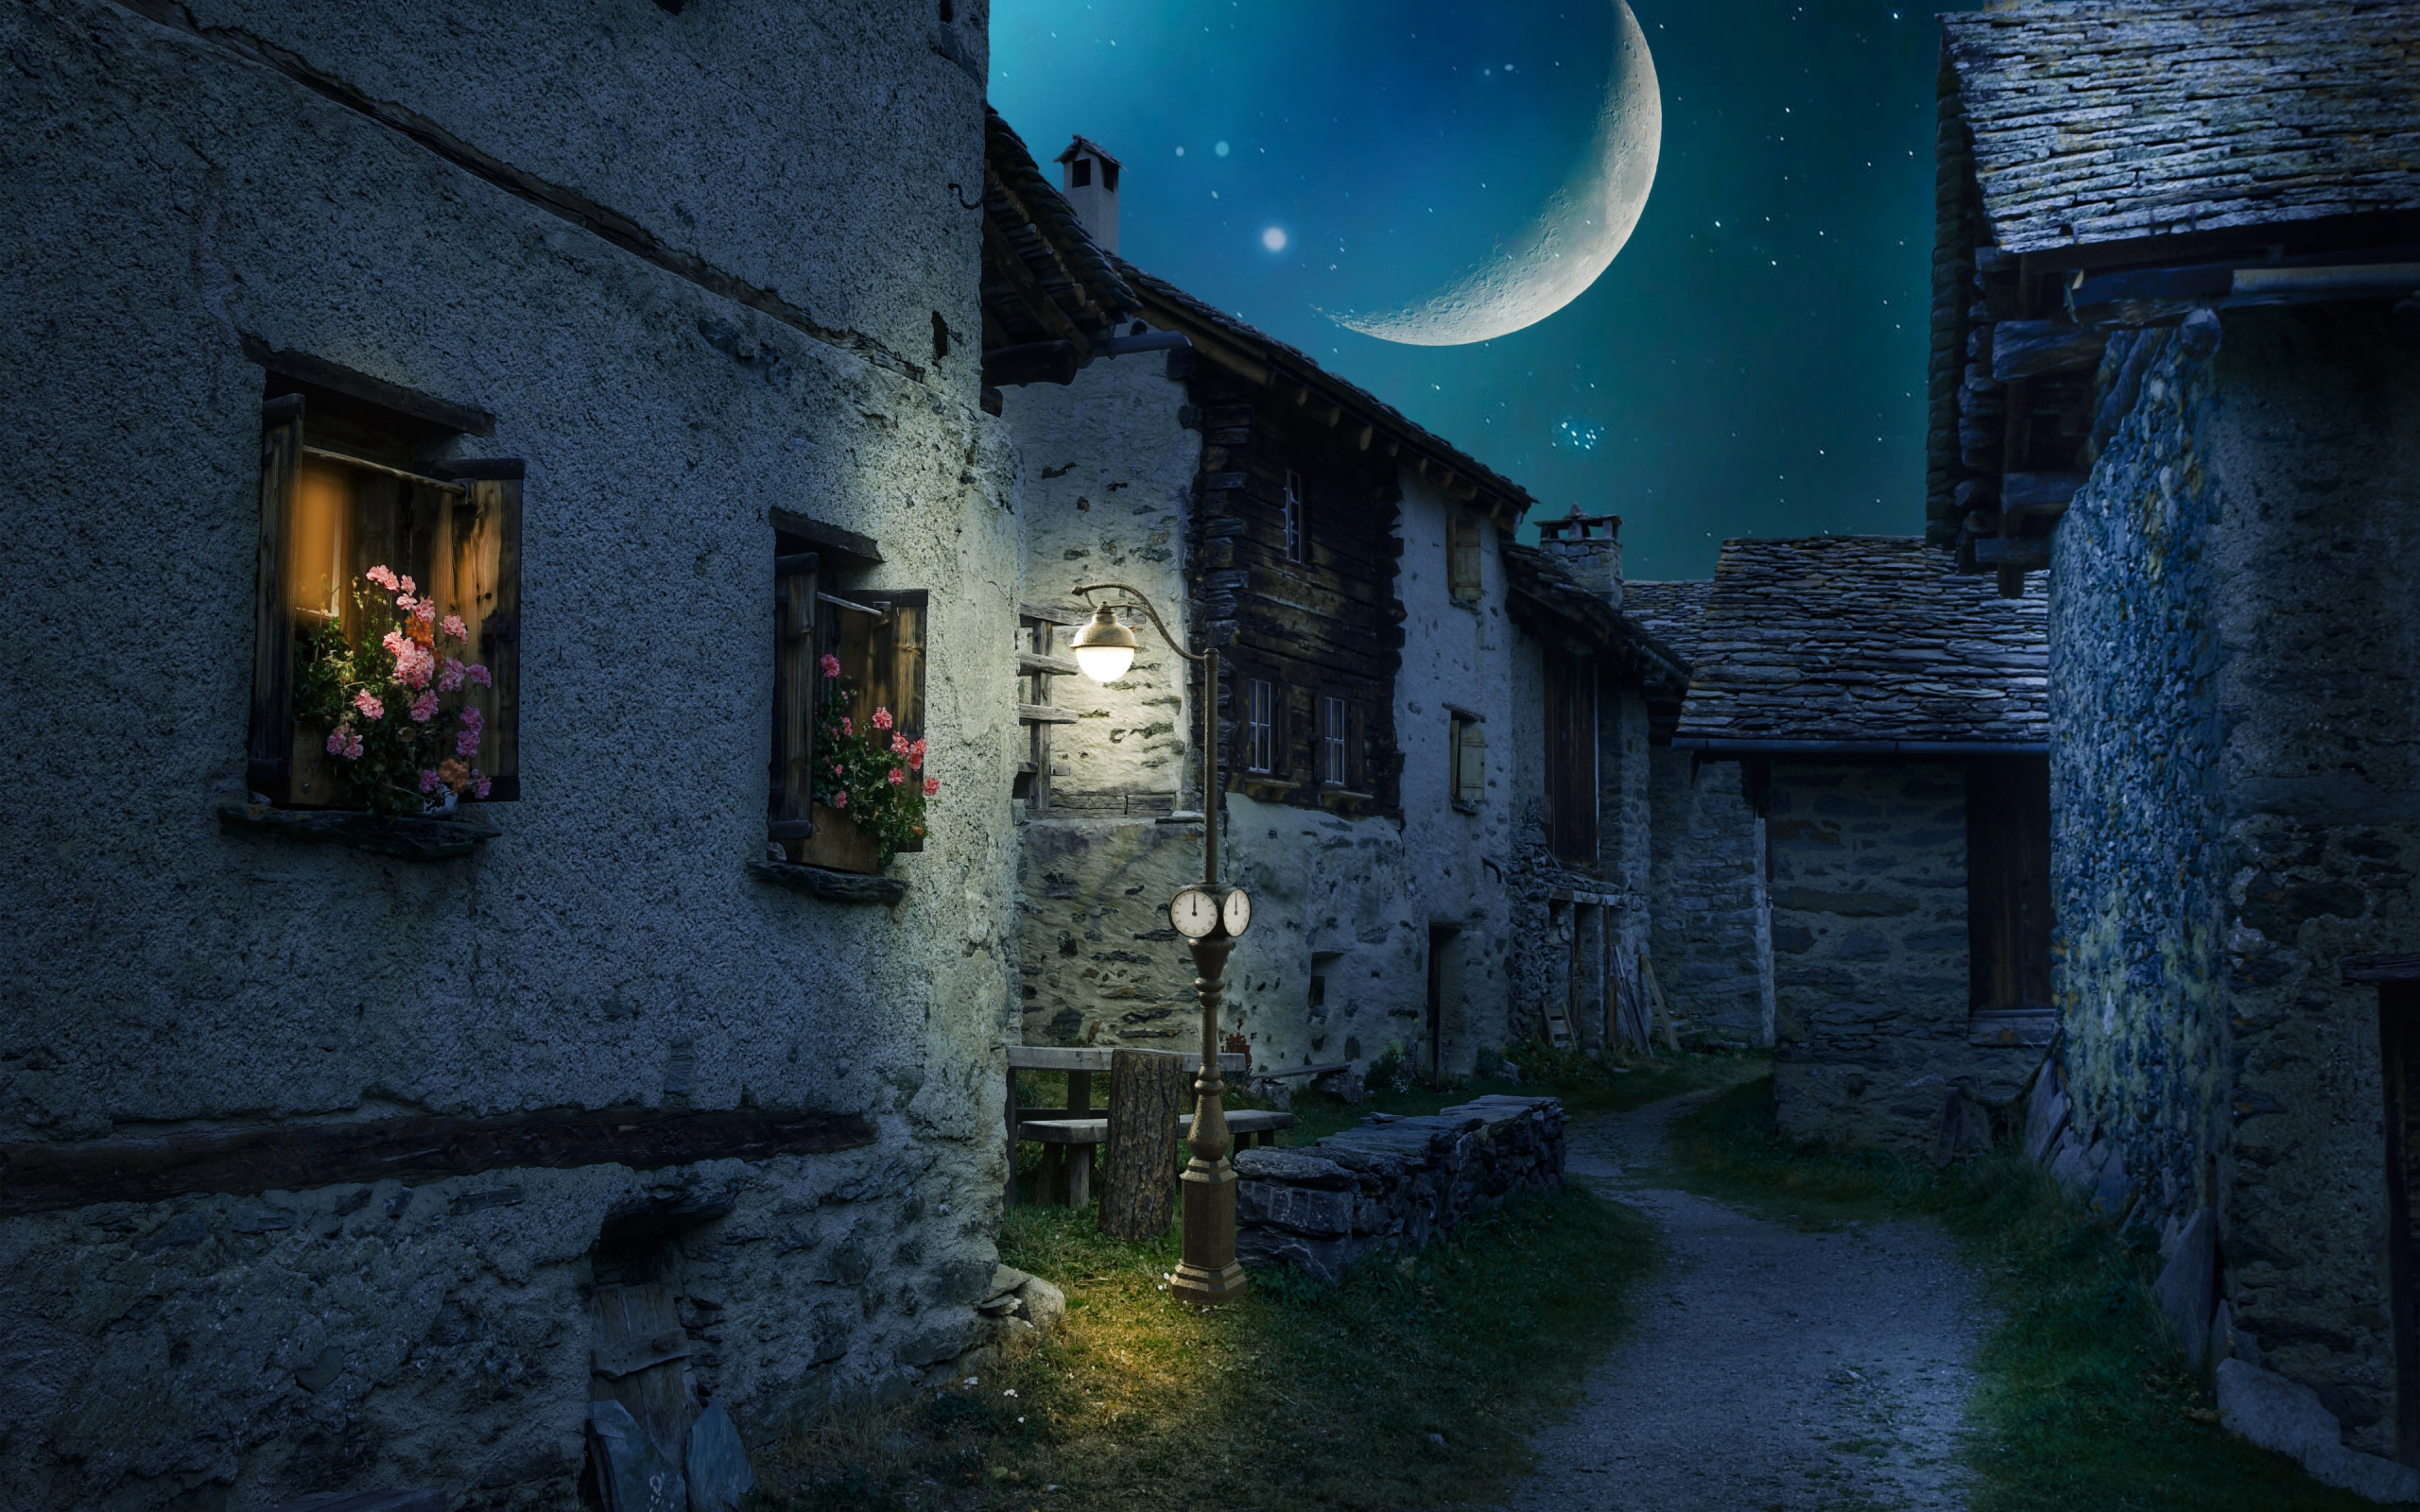 Walk through the medieval city under the moonlight wallpaper 2560x1600